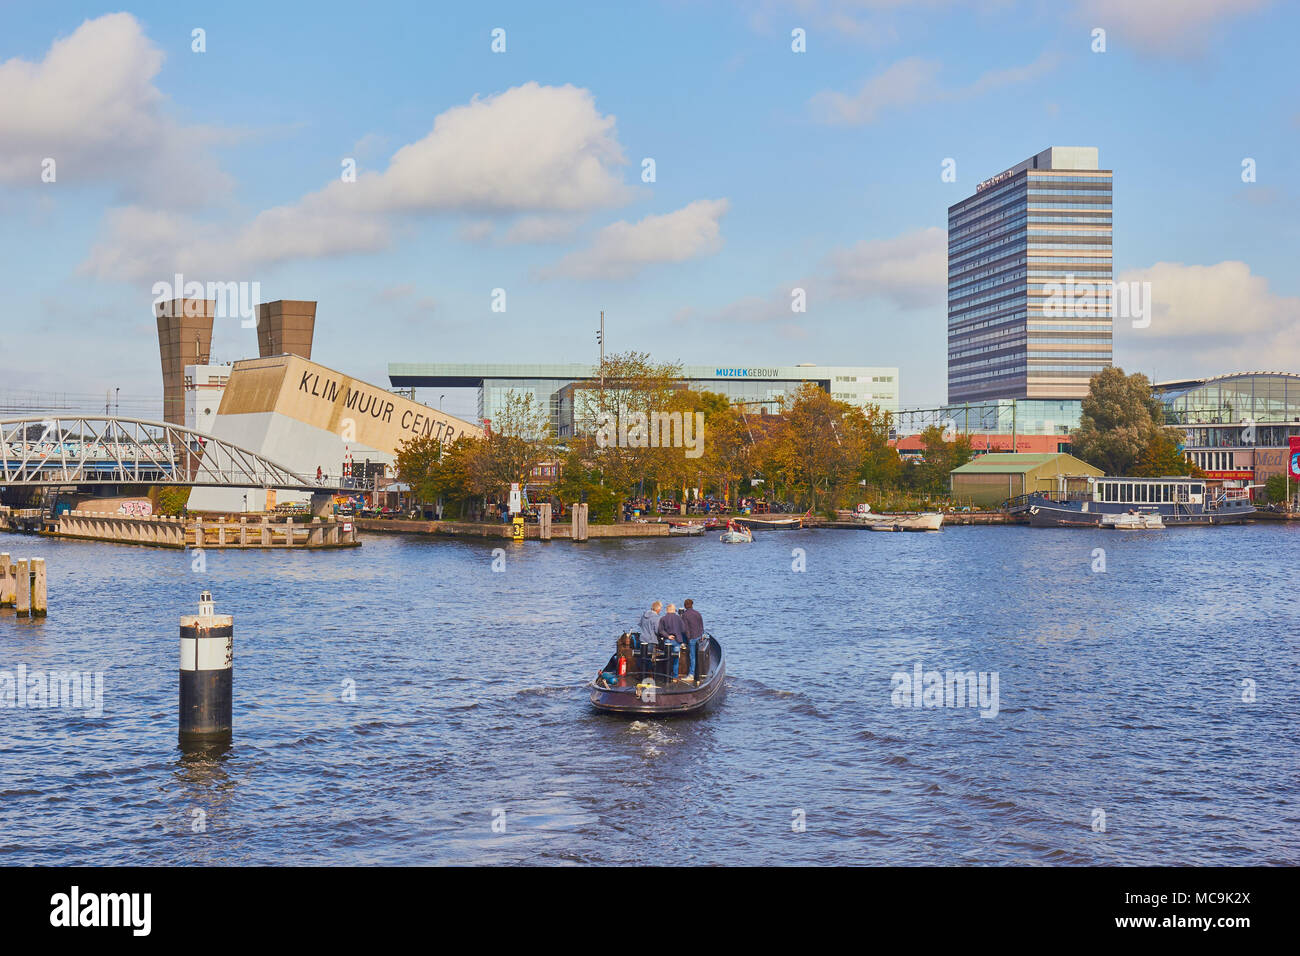 Boat on canal in the Oosterdokseiland (eastern docklands), Amsterdam, Netherlands - Stock Image